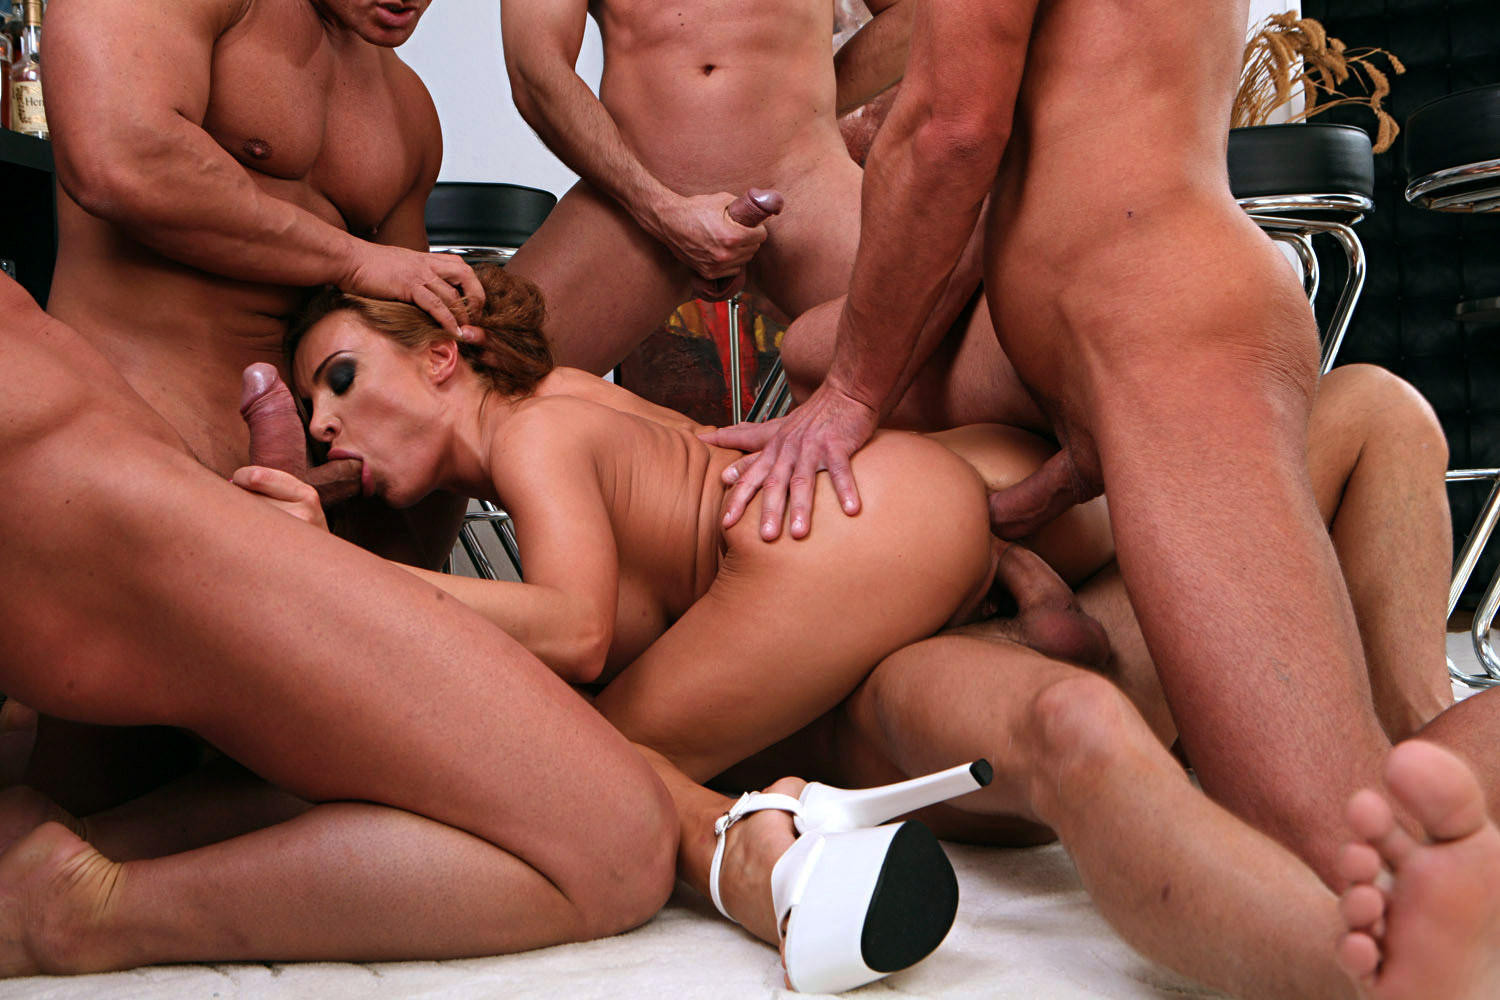 Ethnic gang bang anal, fine ass mexican girl